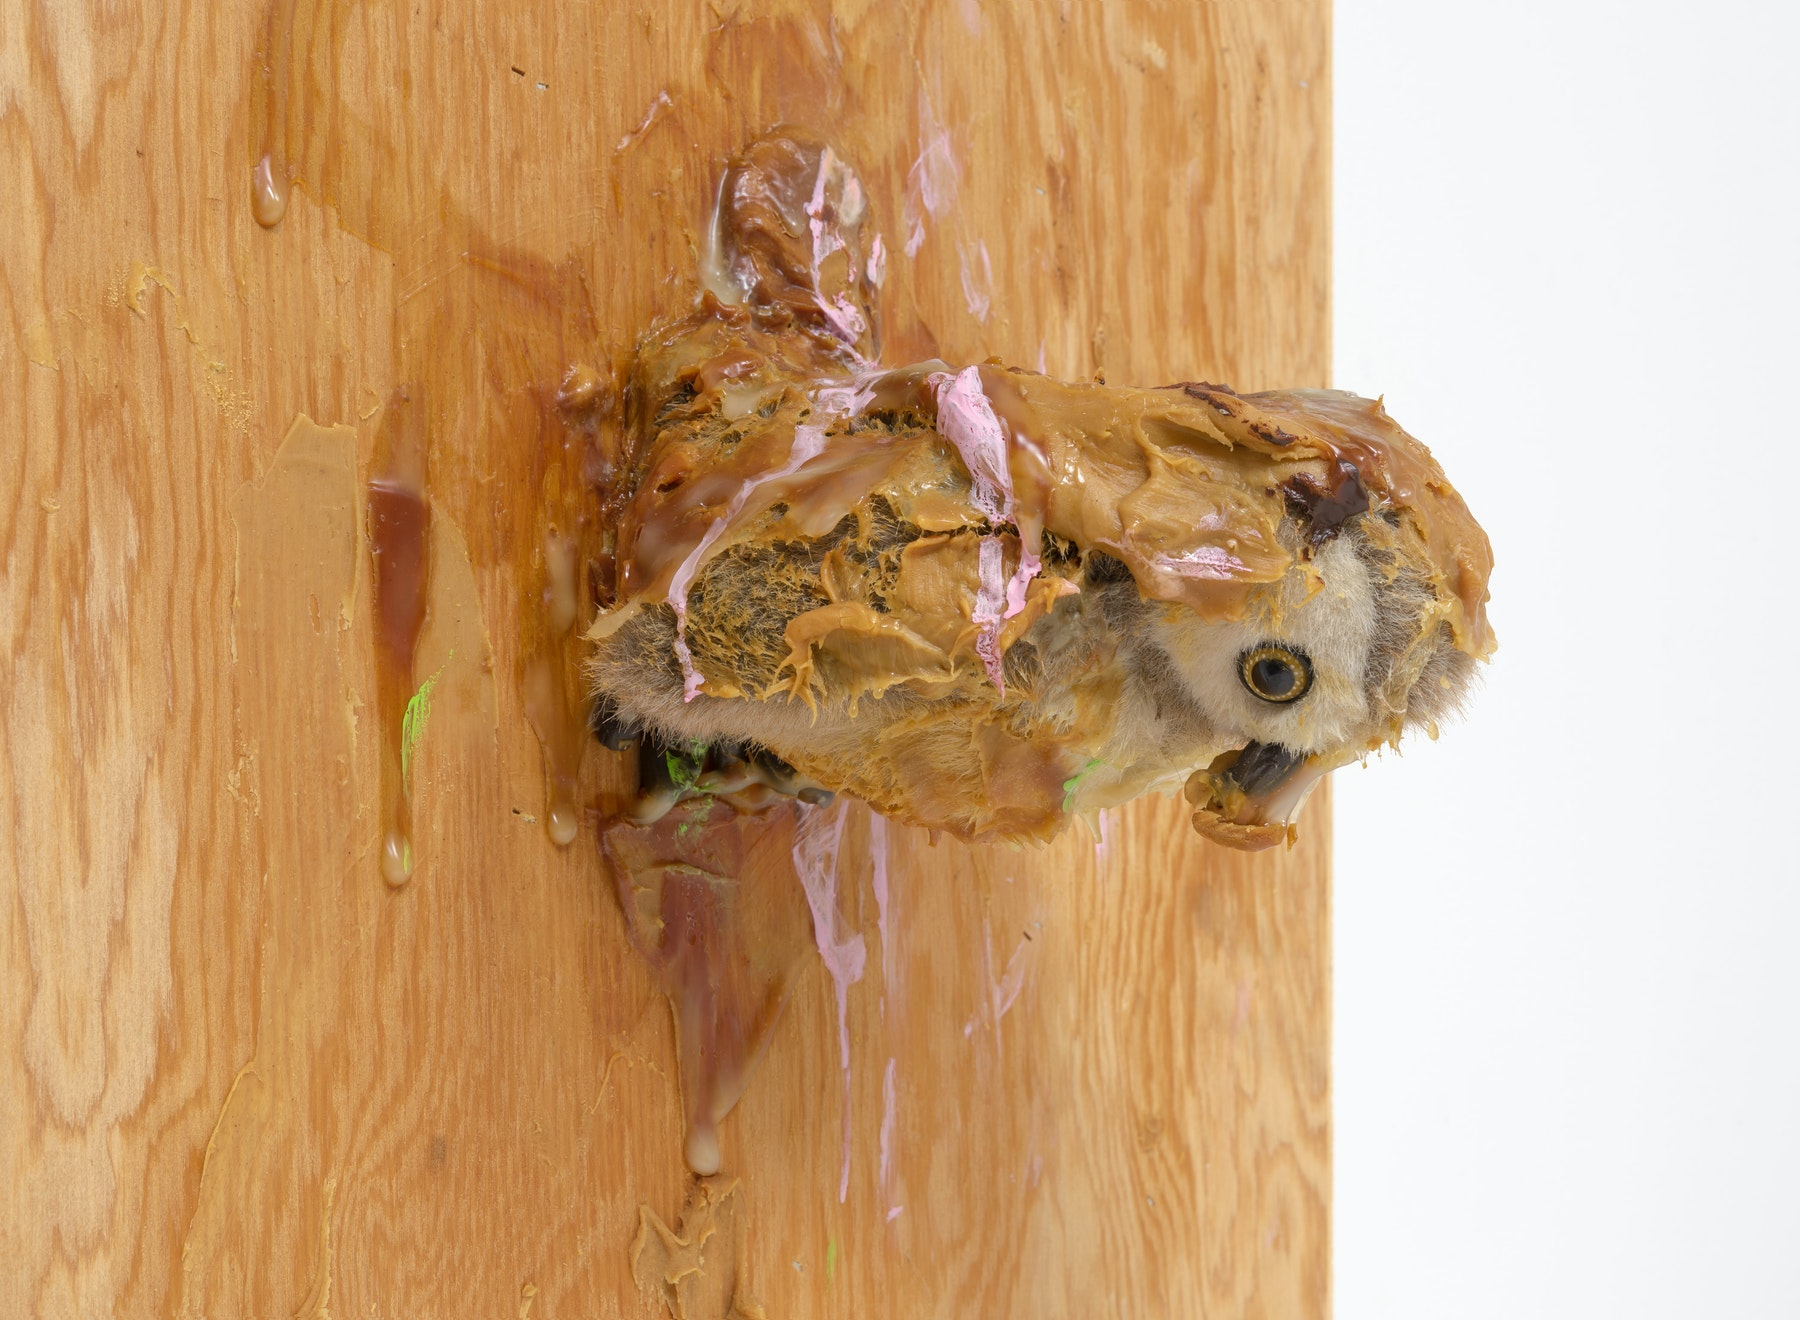 "Pope.L ""Trophy (Owl),"" 2007 Wood, stuffed animal, oil paint, acrylic paint, acrylic medium, peanut butter, screws 34.50"" H x 23.25"" W x 10"" D (87.63 cm H x 59.06 cm W x 25.4 cm D) Inventory #POP138 Courtesy of the Artist and Vielmetter Los Angeles. © Pope.L Photo credit: Robert Wedemeyer"